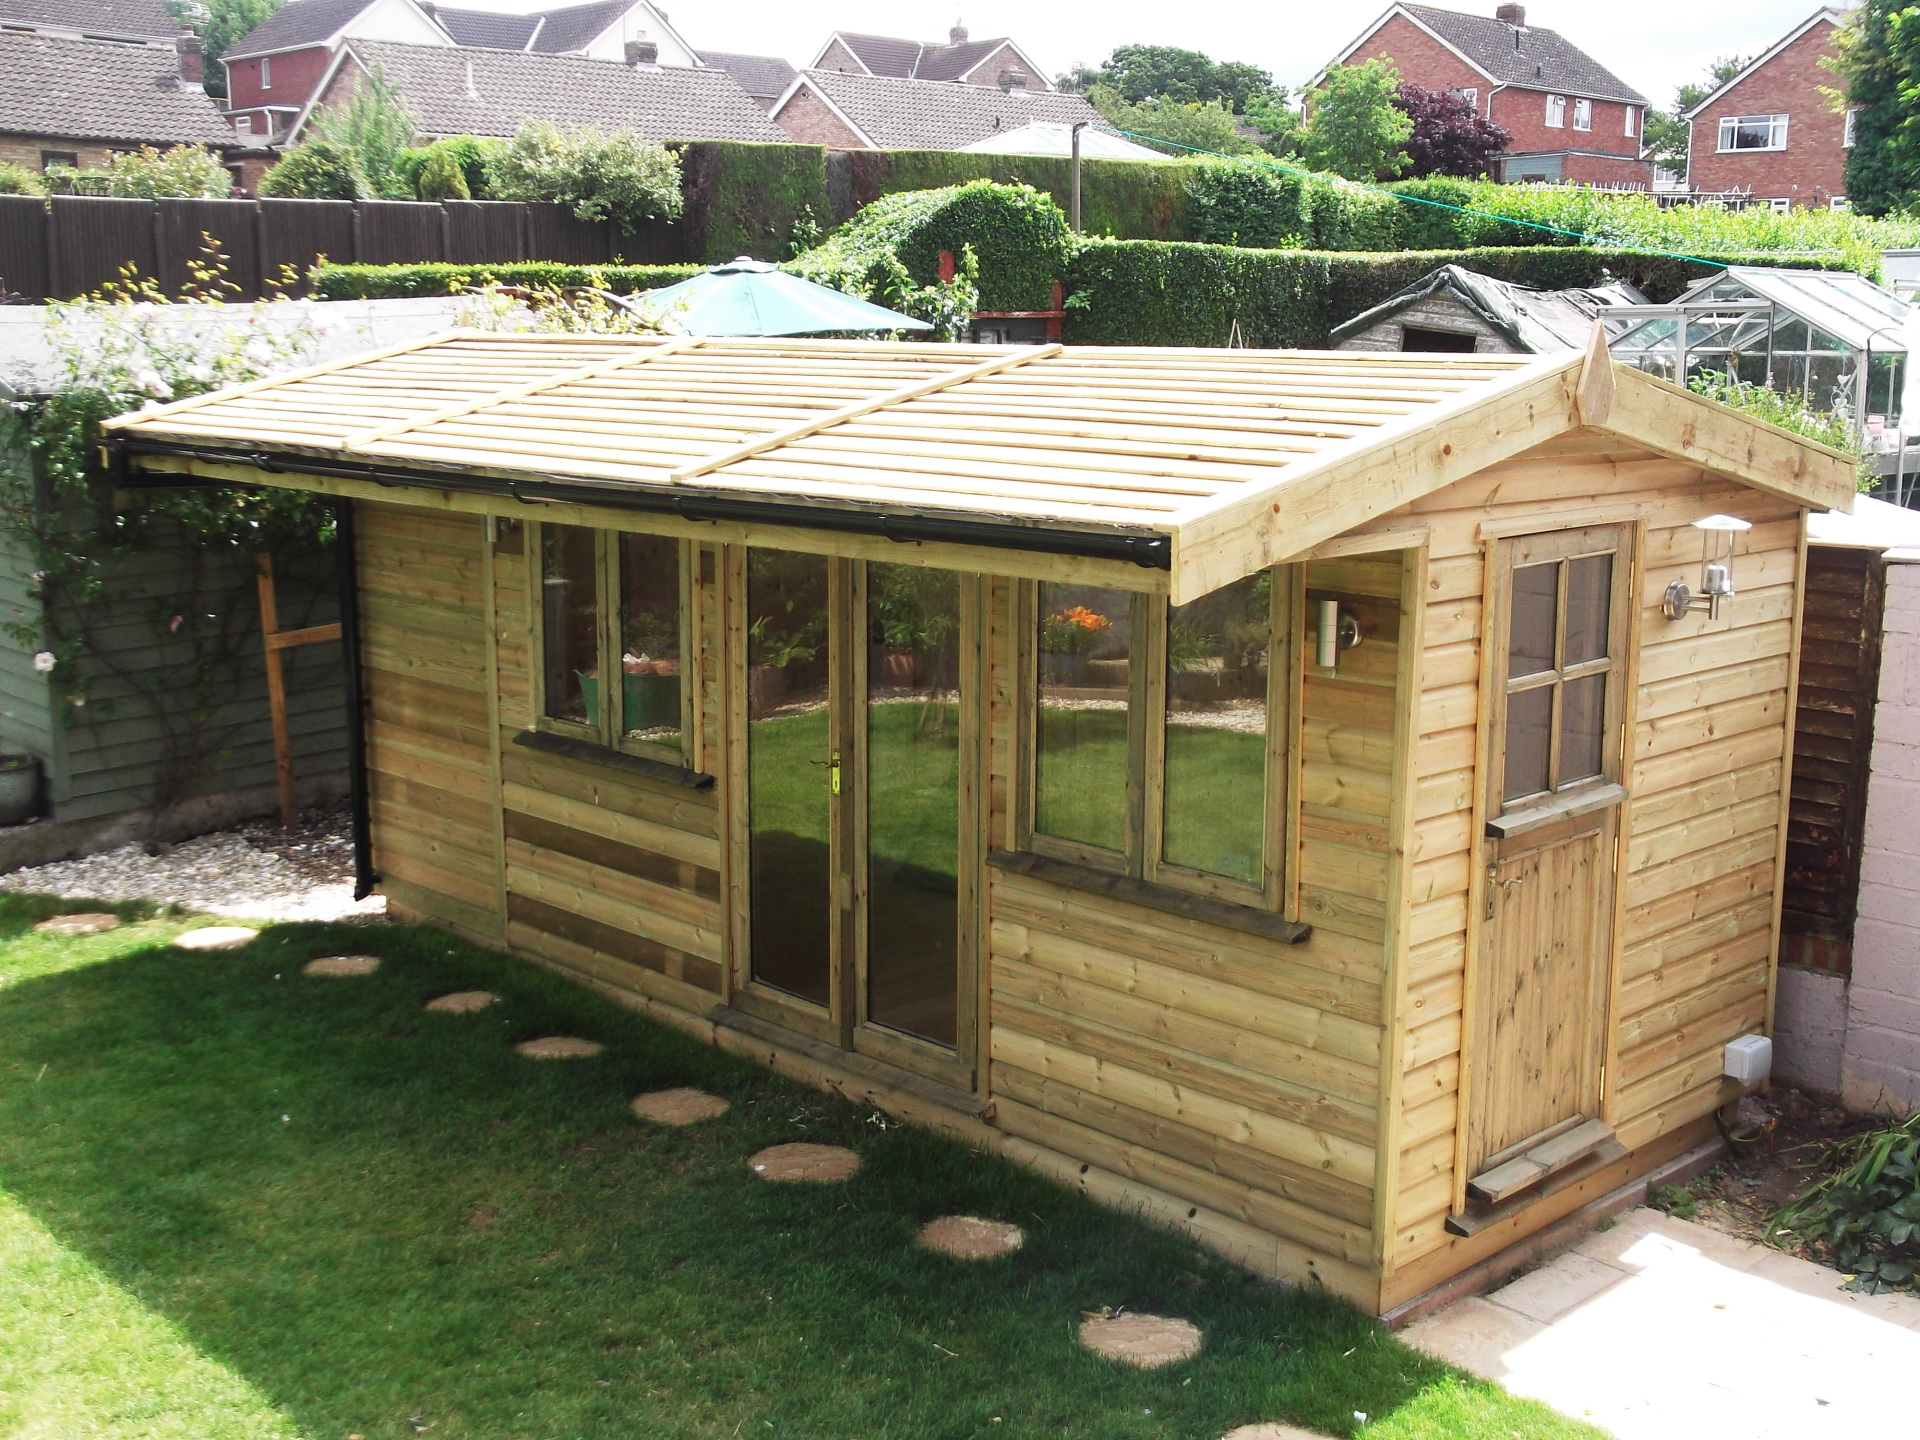 Garden building with log store.